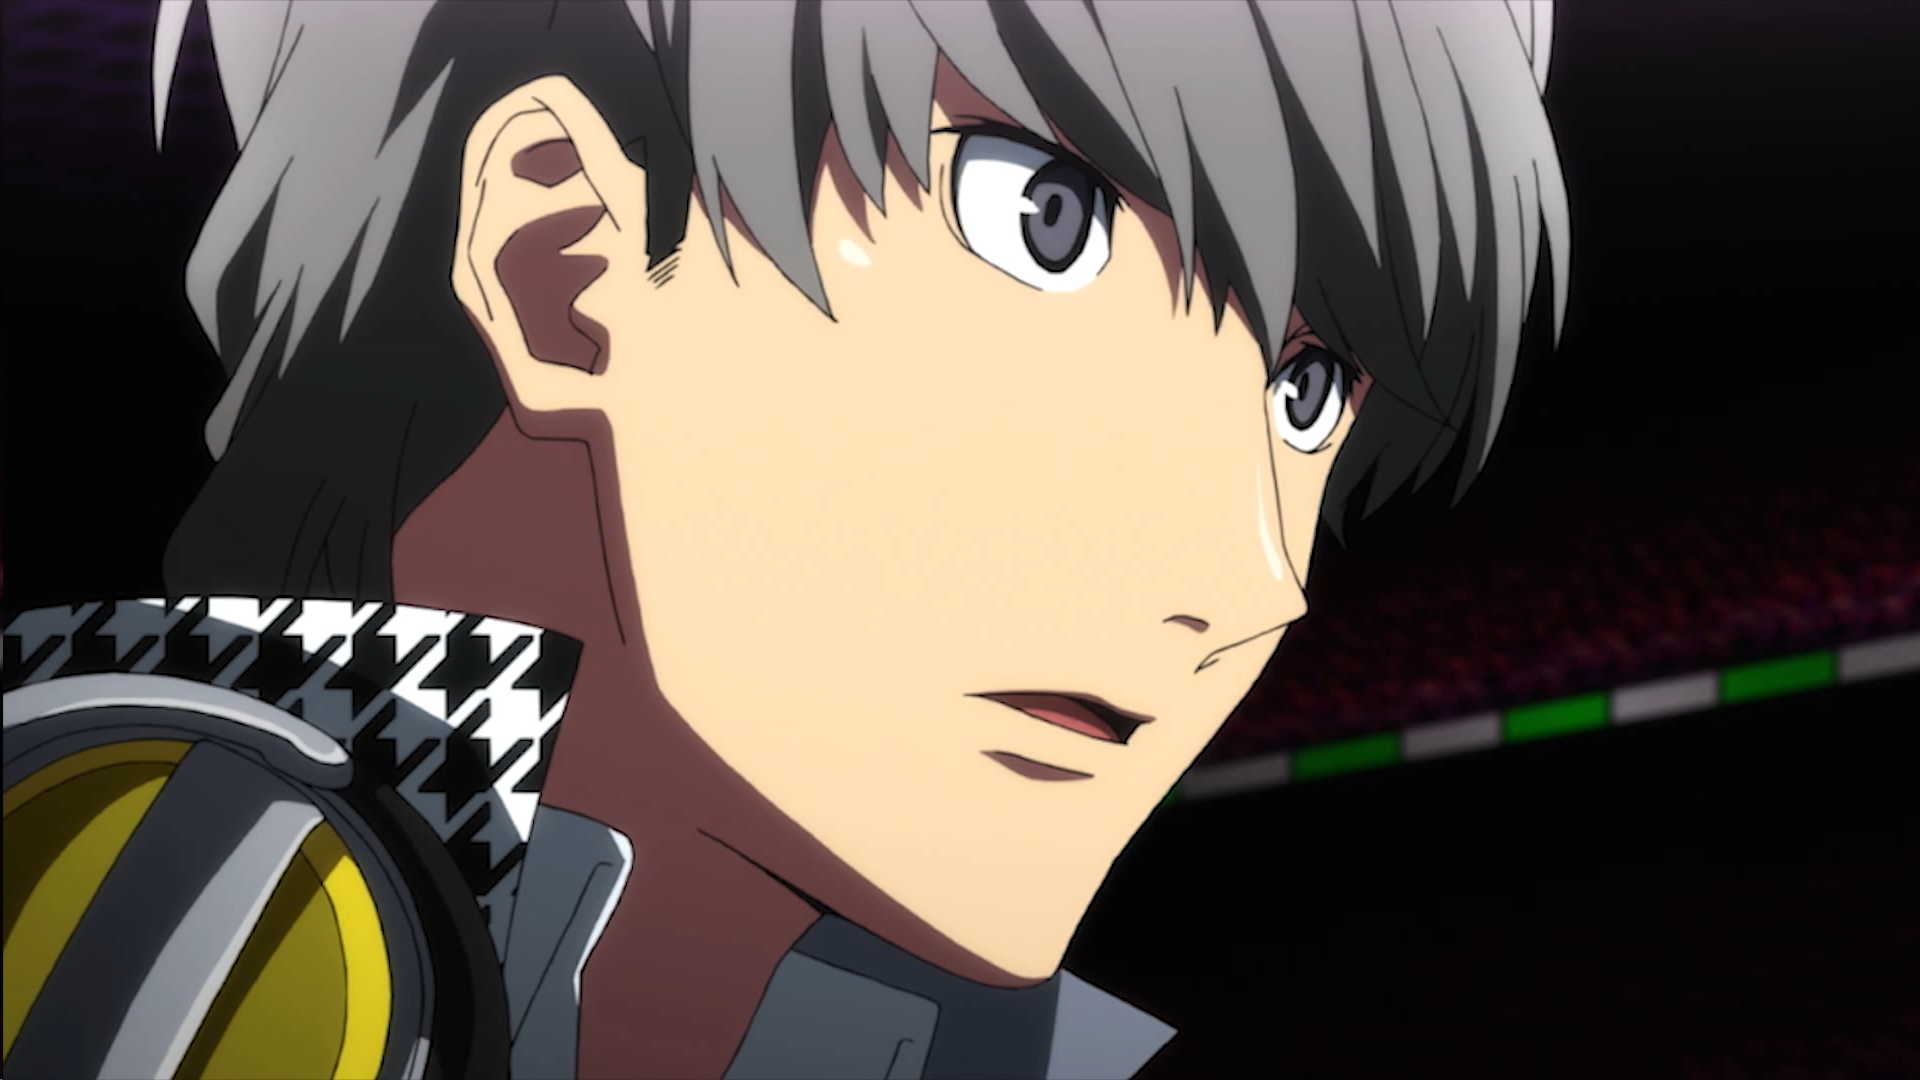 Persona 4 Anime Characters Database : Persona dancing all night track list yu trailer new